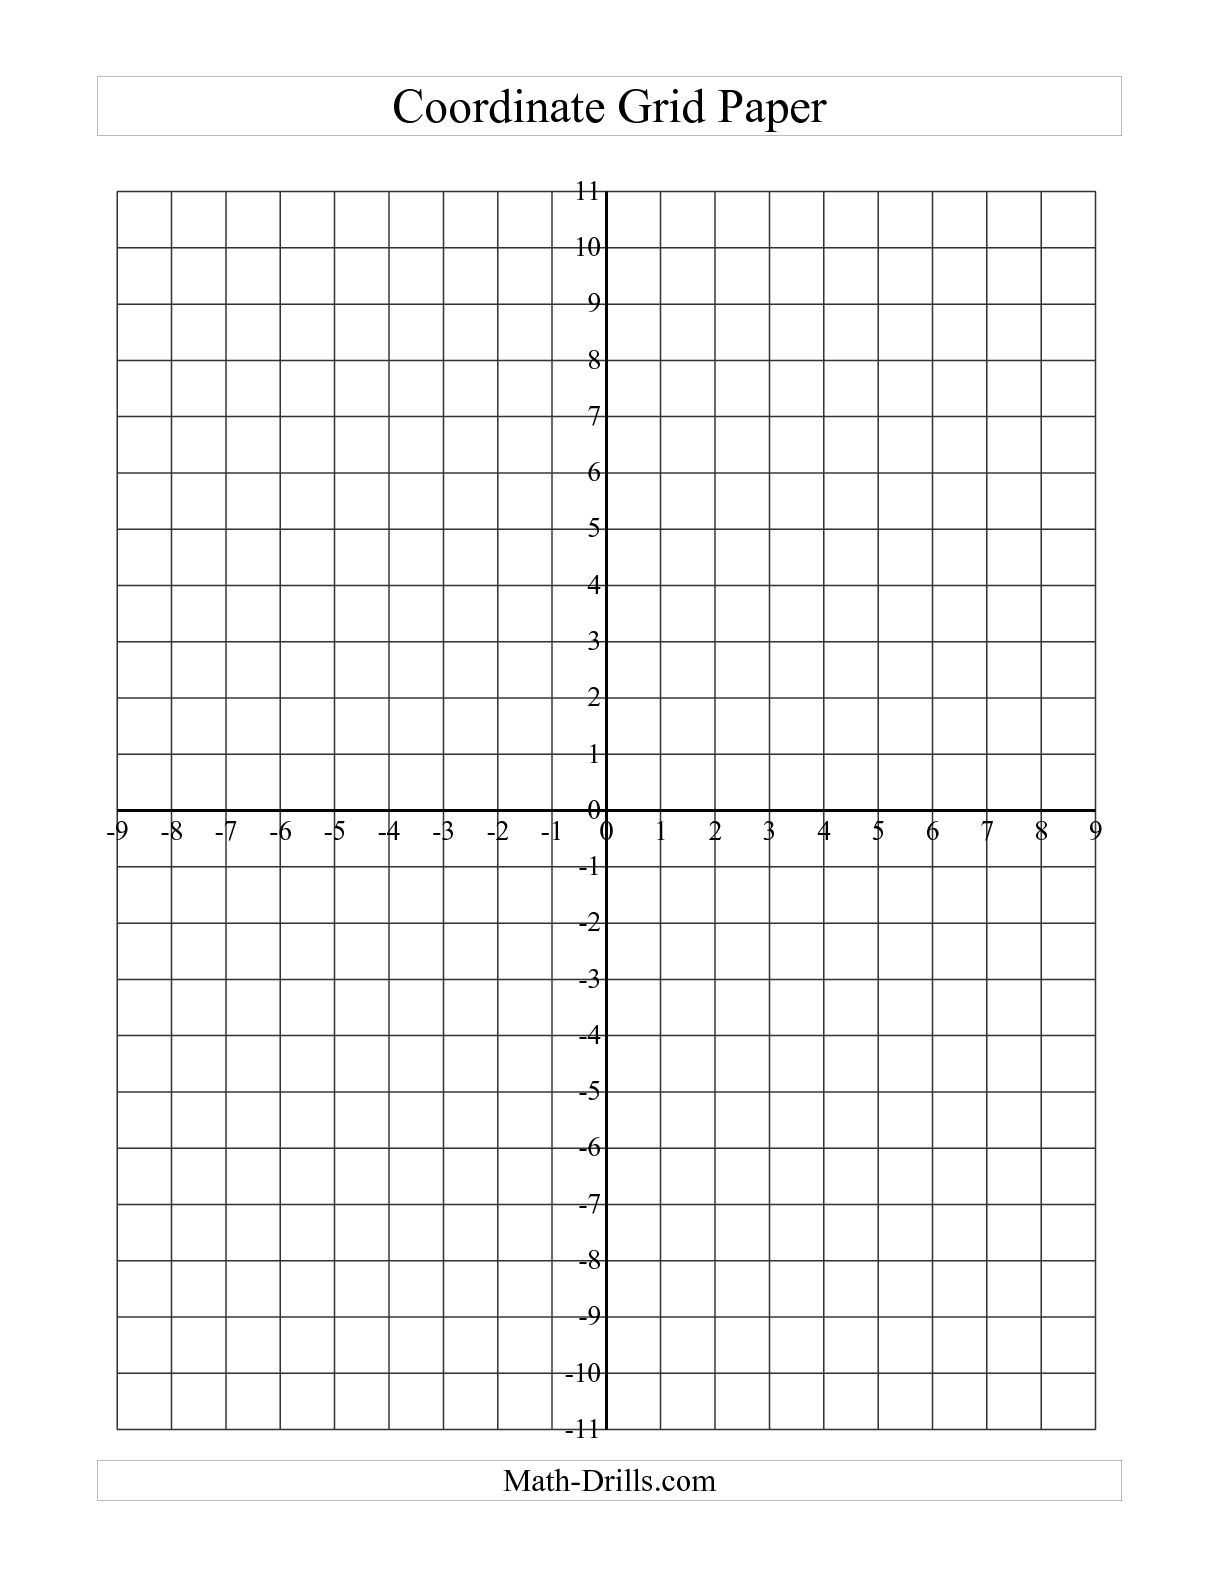 Elementary Teacher Worksheets Also the Coordinate Grid Paper A Math Worksheet From the Graph Paper